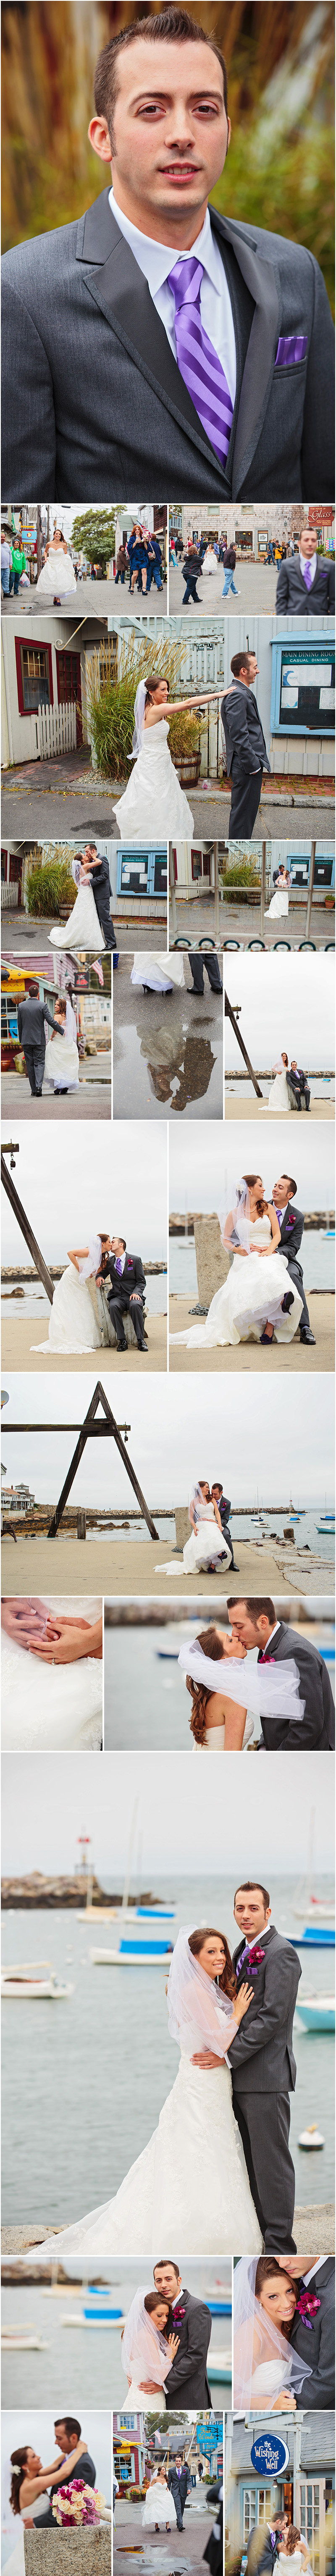 WEDDING PHOTOS ARTS ASSOCIATION ROCKPORT MA